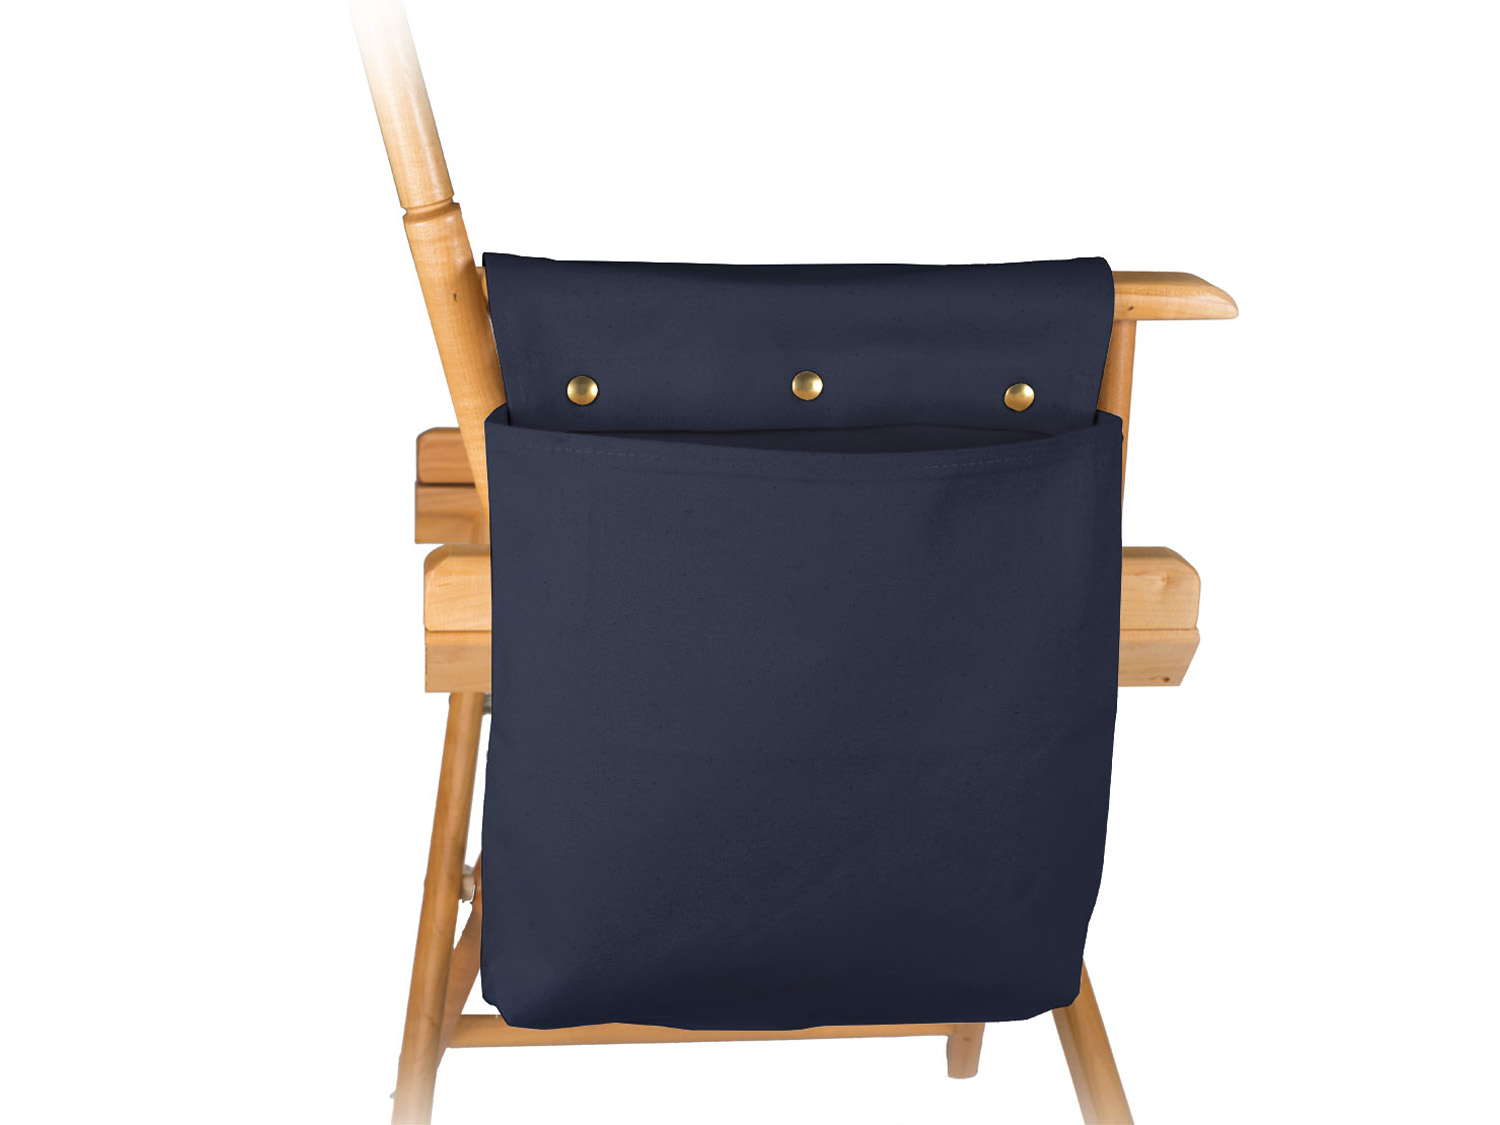 Attractive Directors Chair Replacement Canvas for Best Director Chair Ideas: Director Chair Covers World Market | Directors Chair Replacement Canvas | Tall Directors Chair